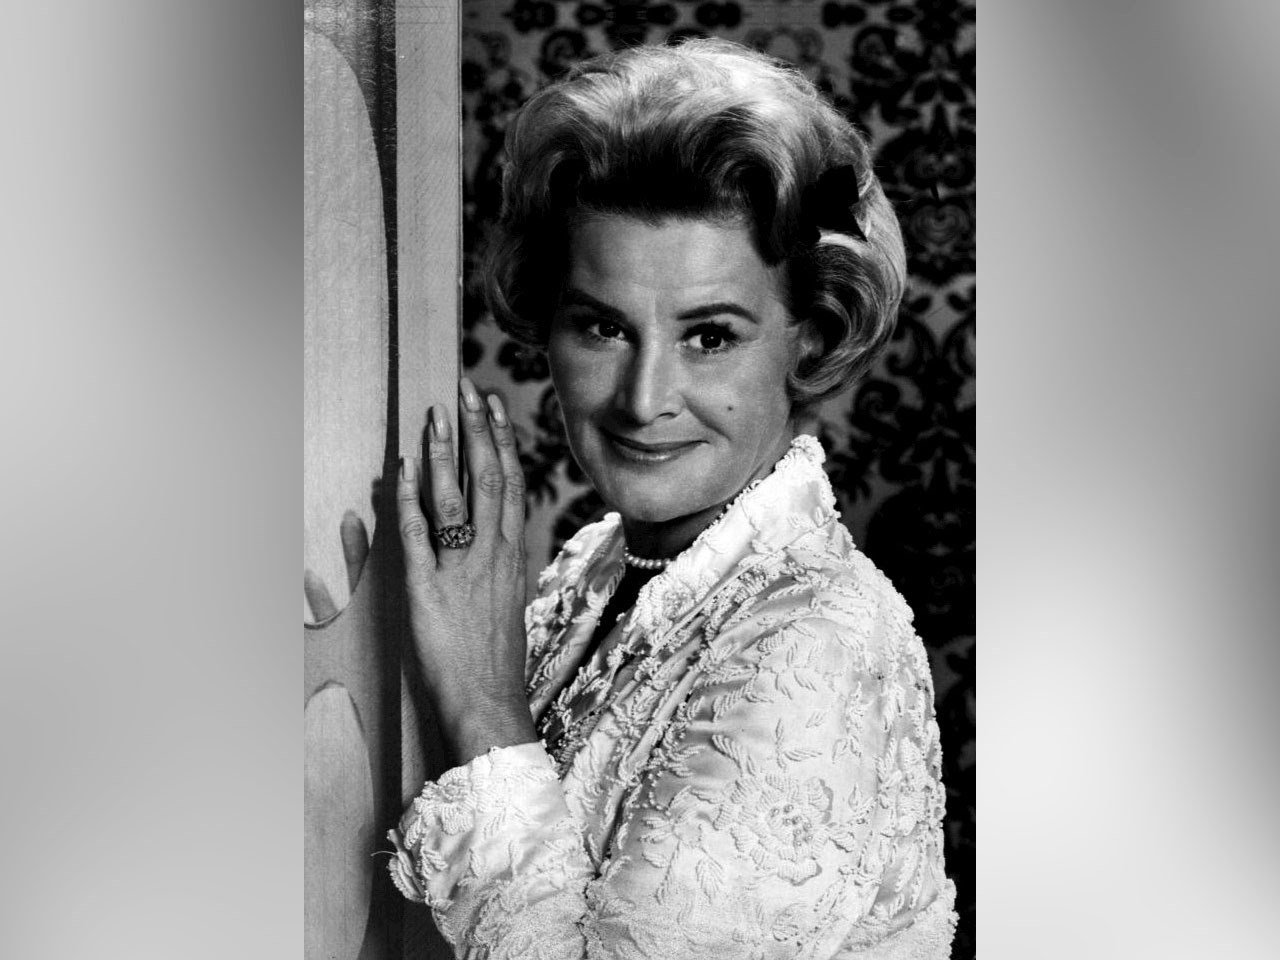 Rose Marie, star of The Dick Van Dyke Show, dies at 94